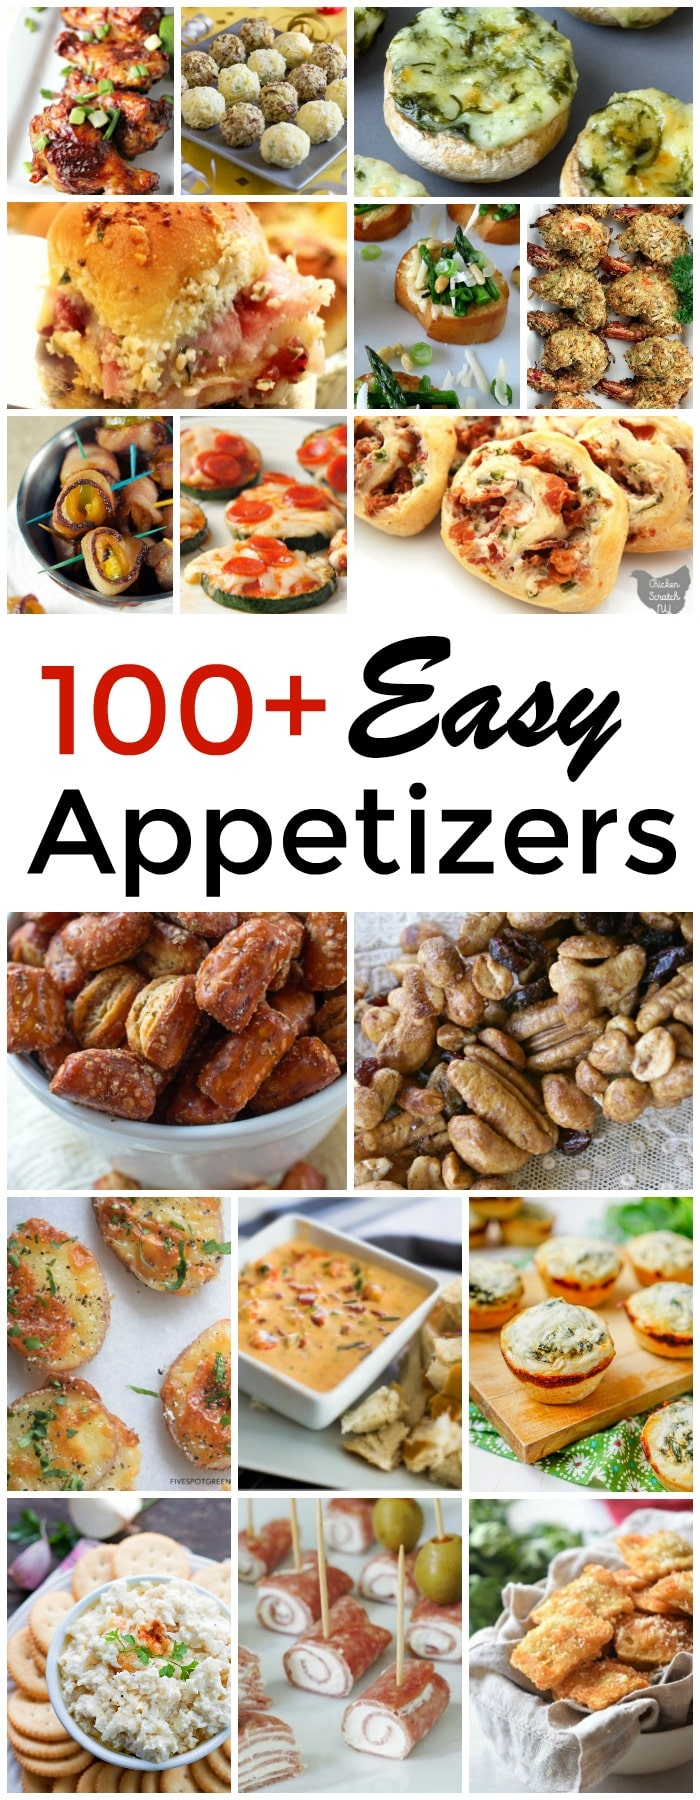 Awesome collection of over 100 of the best finger foods and easy appetizers for a party! #appetizers #fingerfoods #easyrecipes